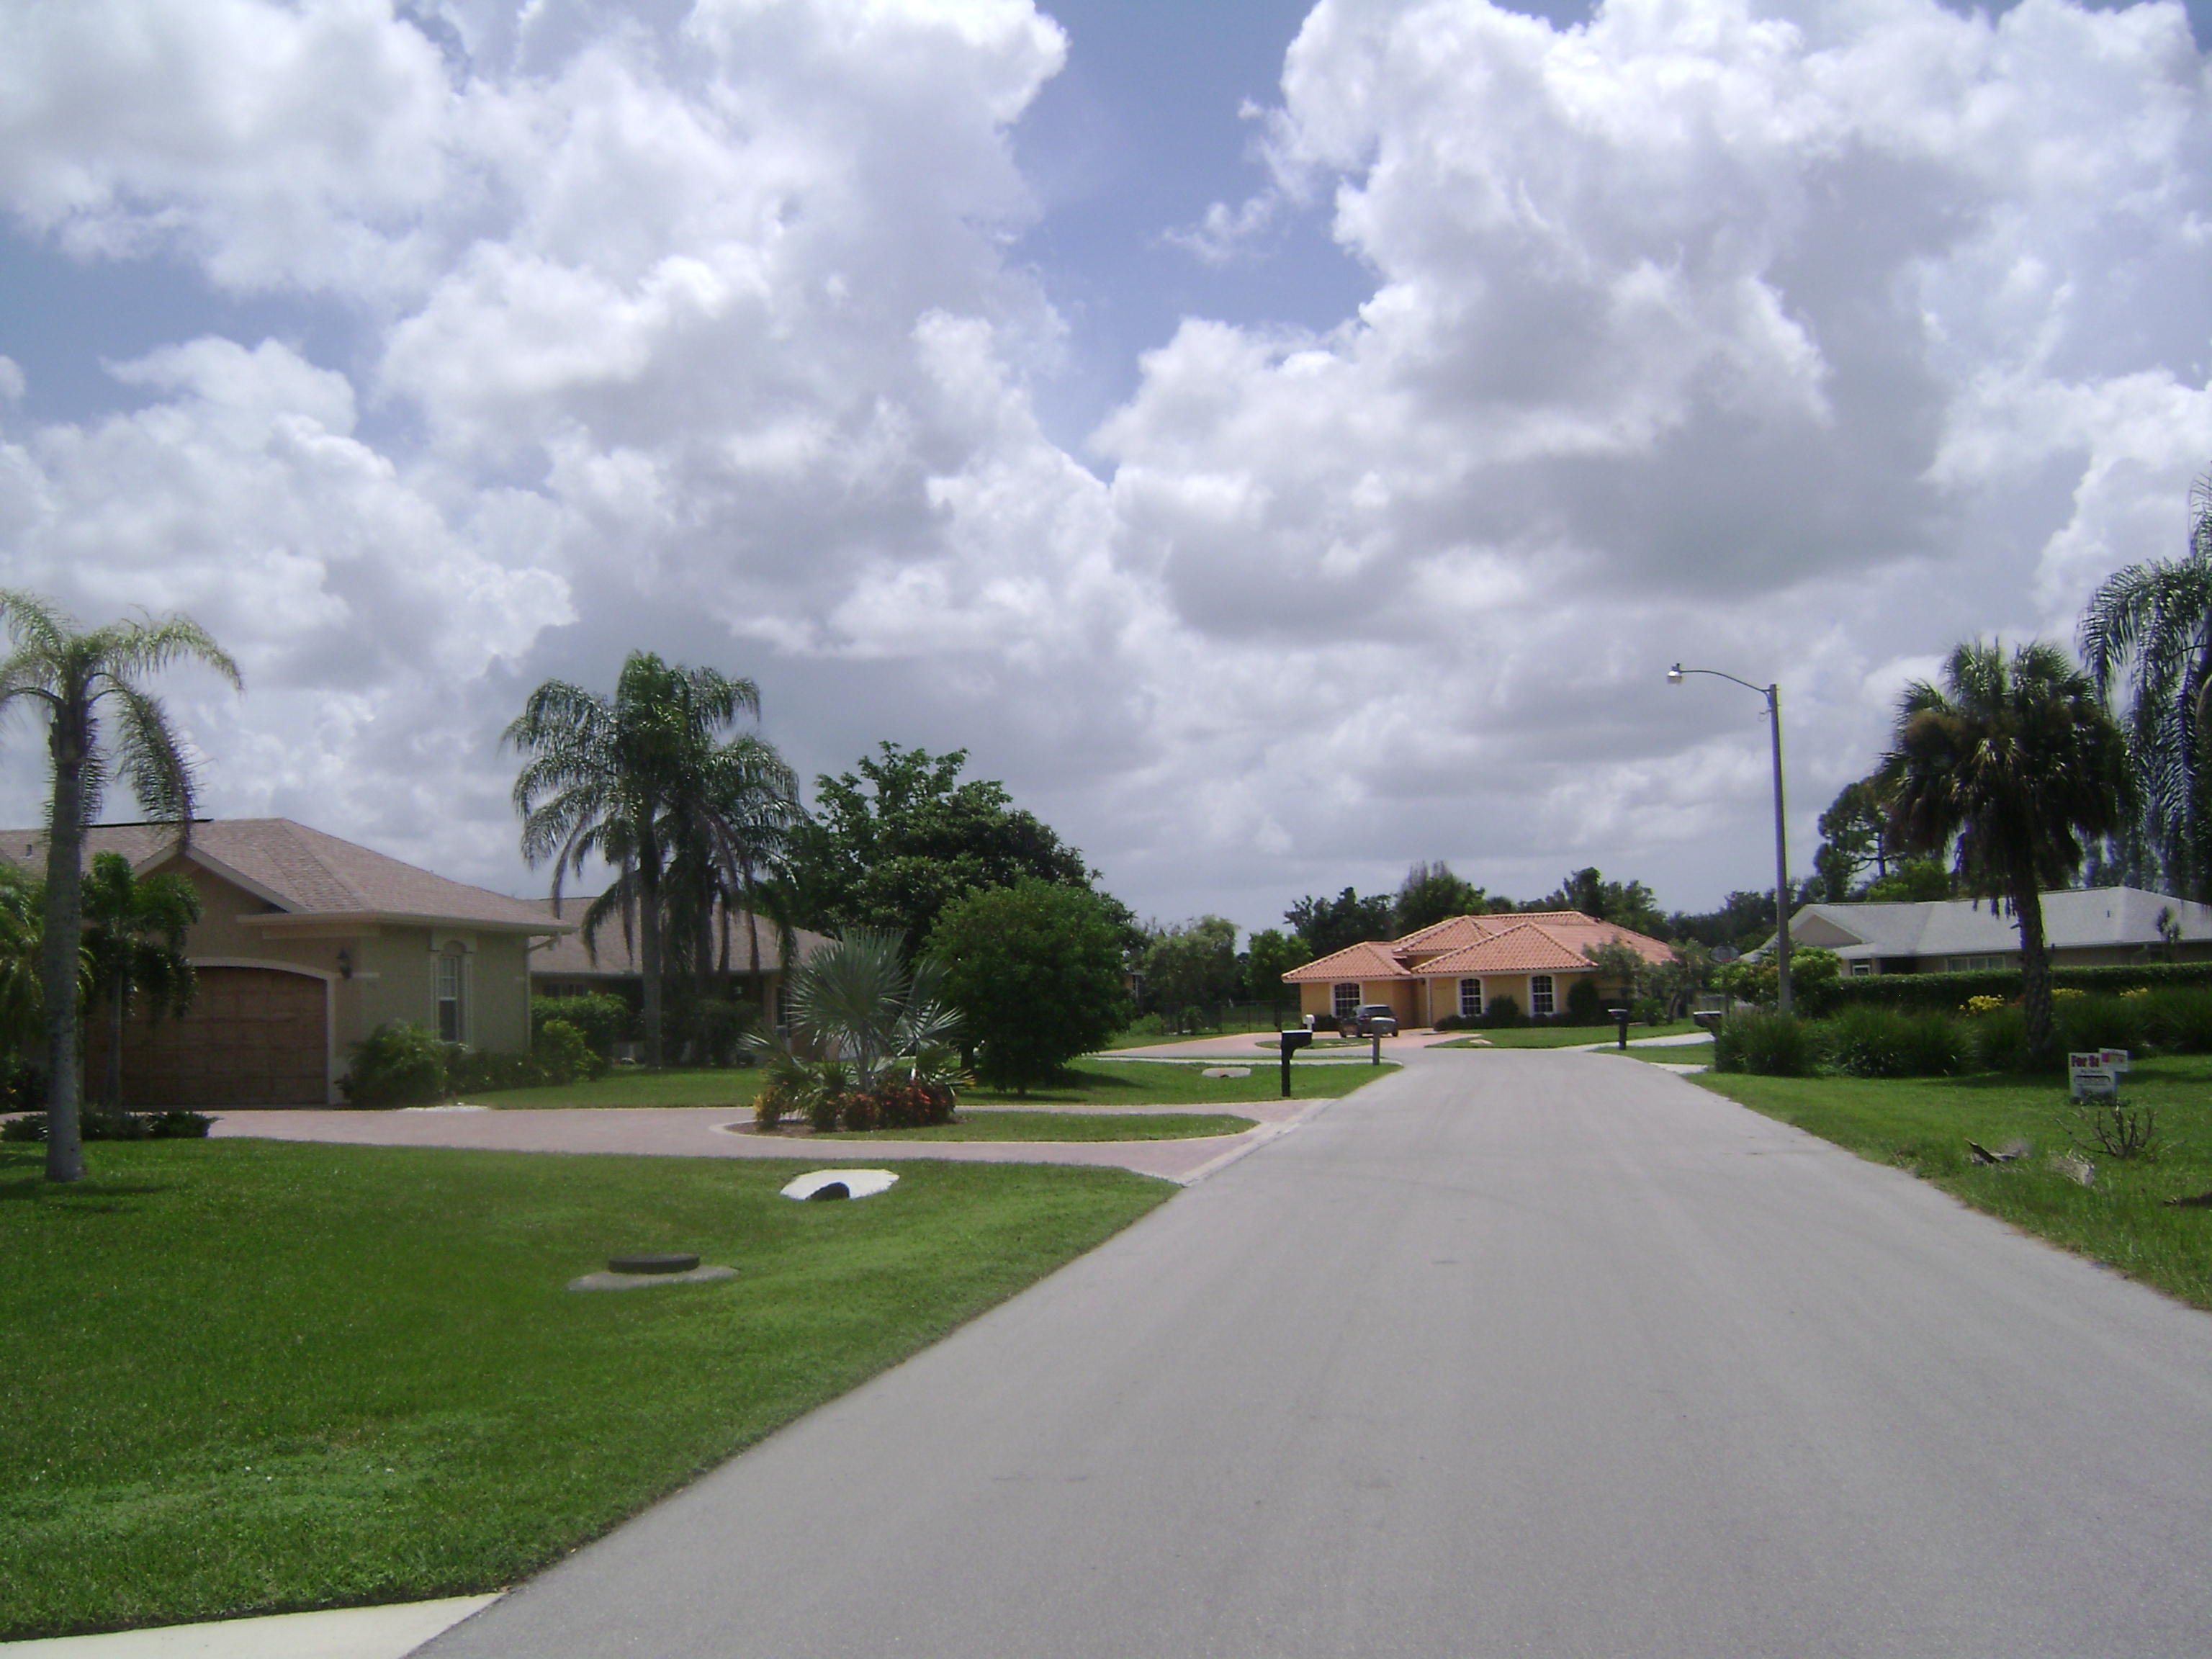 Residential street in Golden Gate City in Naples, Florida.